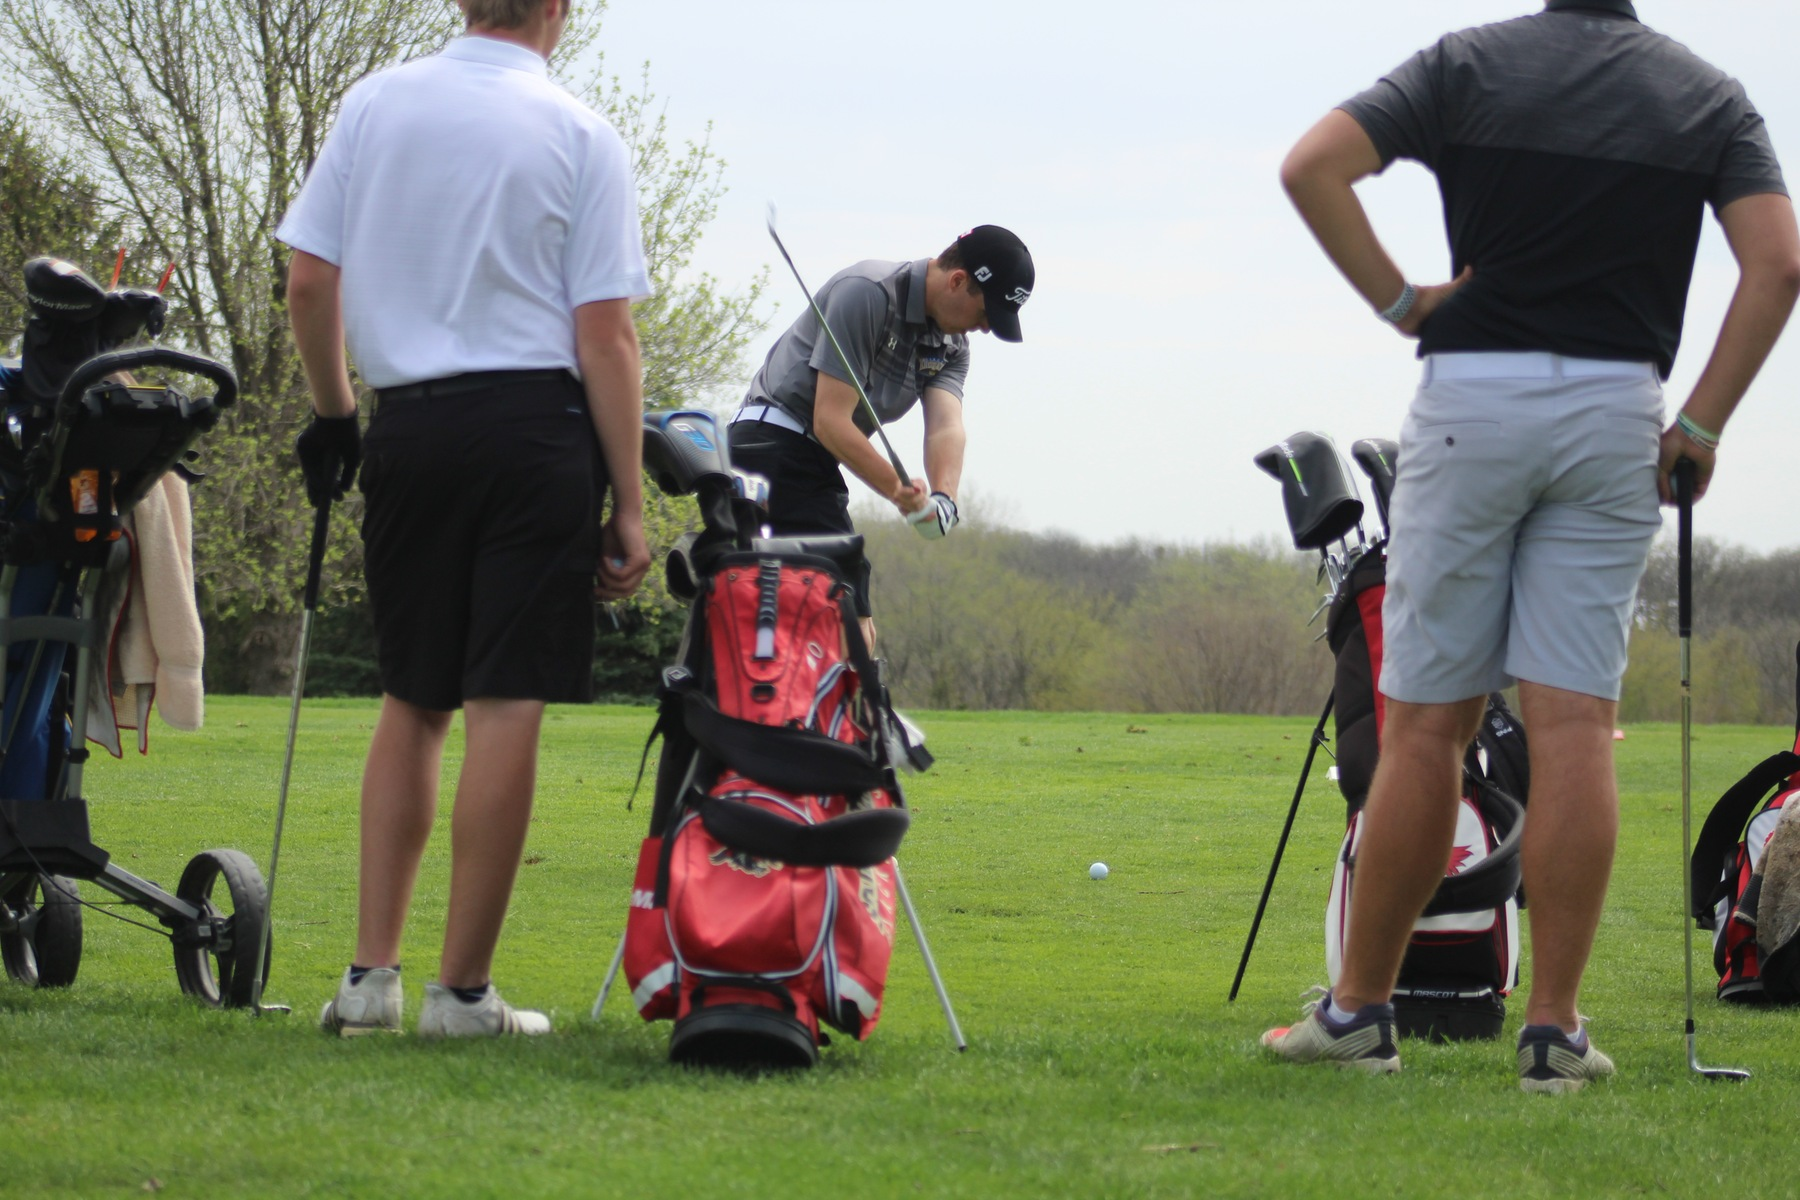 NIACC's Josh Schaefer tees off on a par three in first round of regional golf tournament Saturday in Panora.